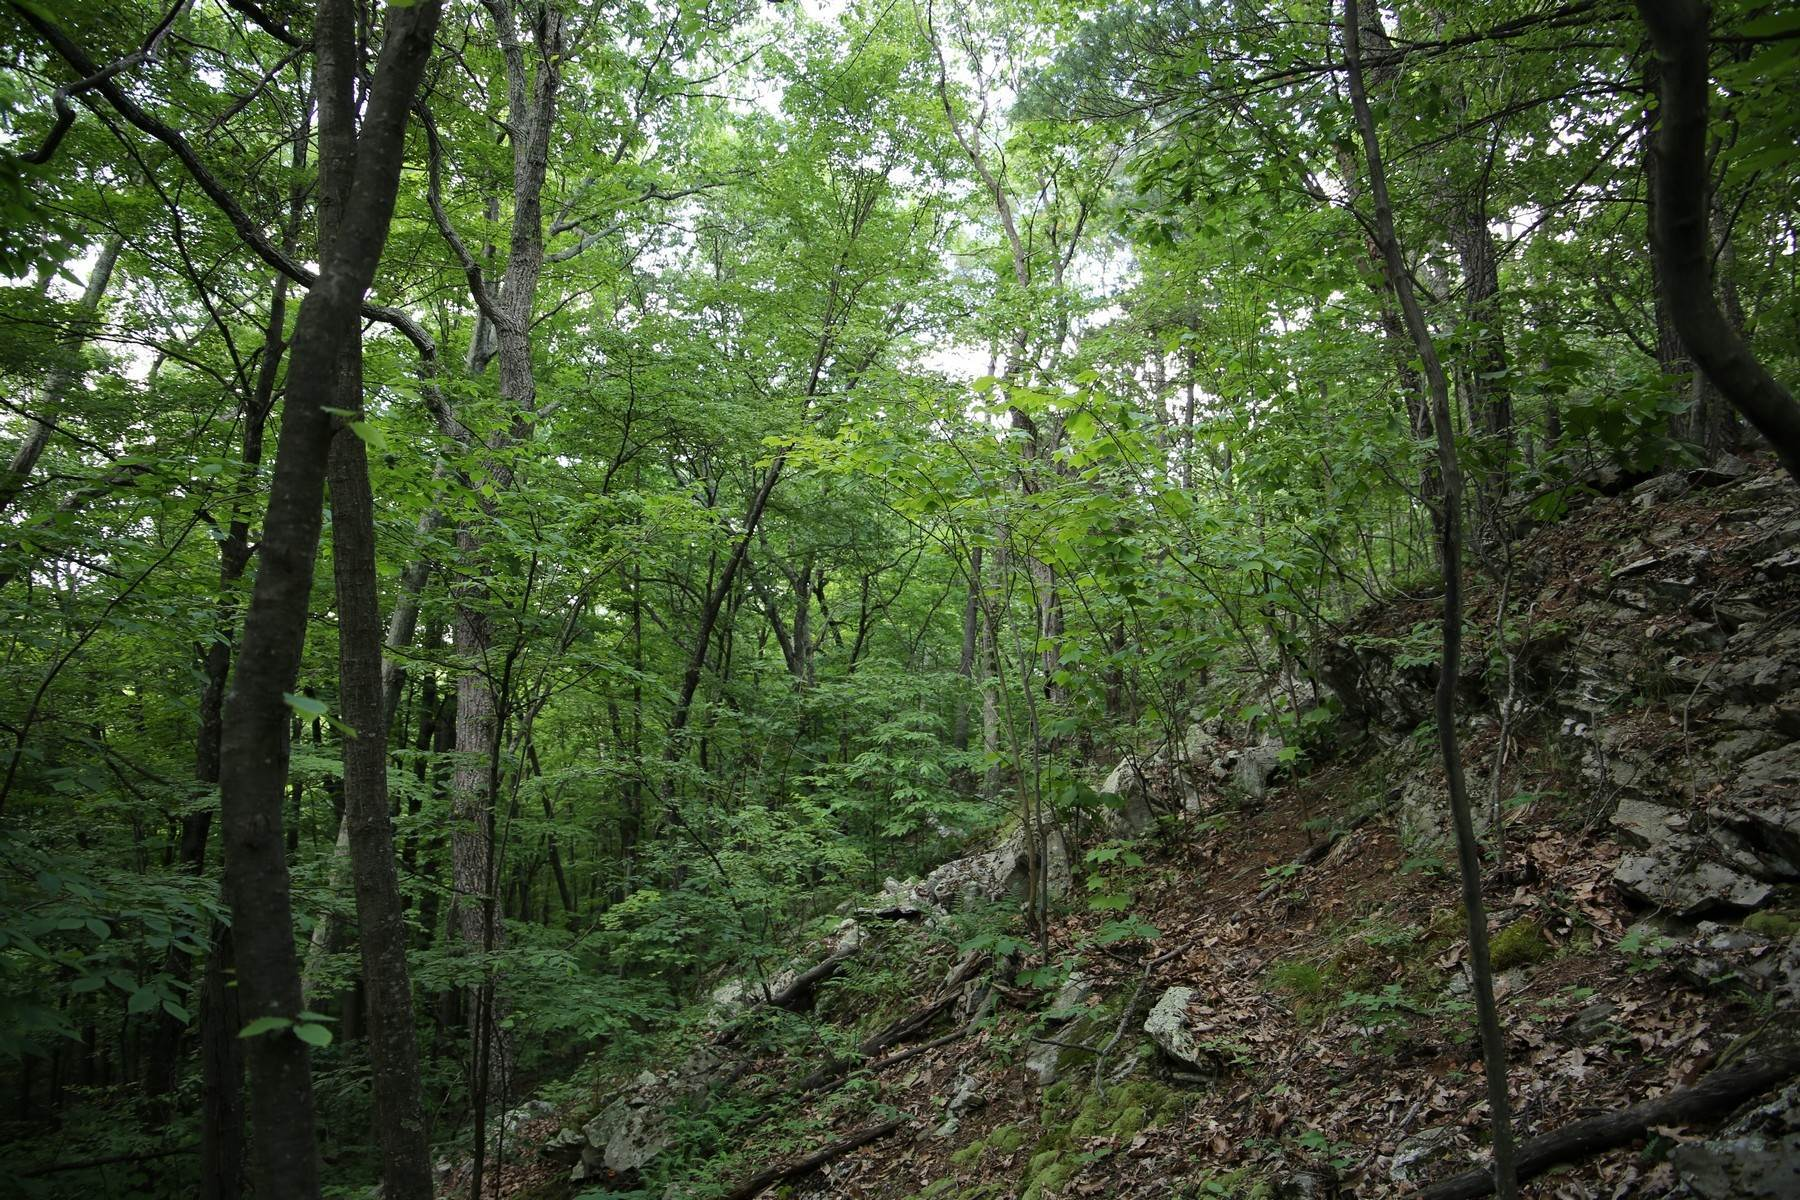 7. Land for Sale at Lily Lake Rd with access off Kisor Rd 70 Kisor (easement) Road, Lily Lake Rd Highland, New York 12528 United States